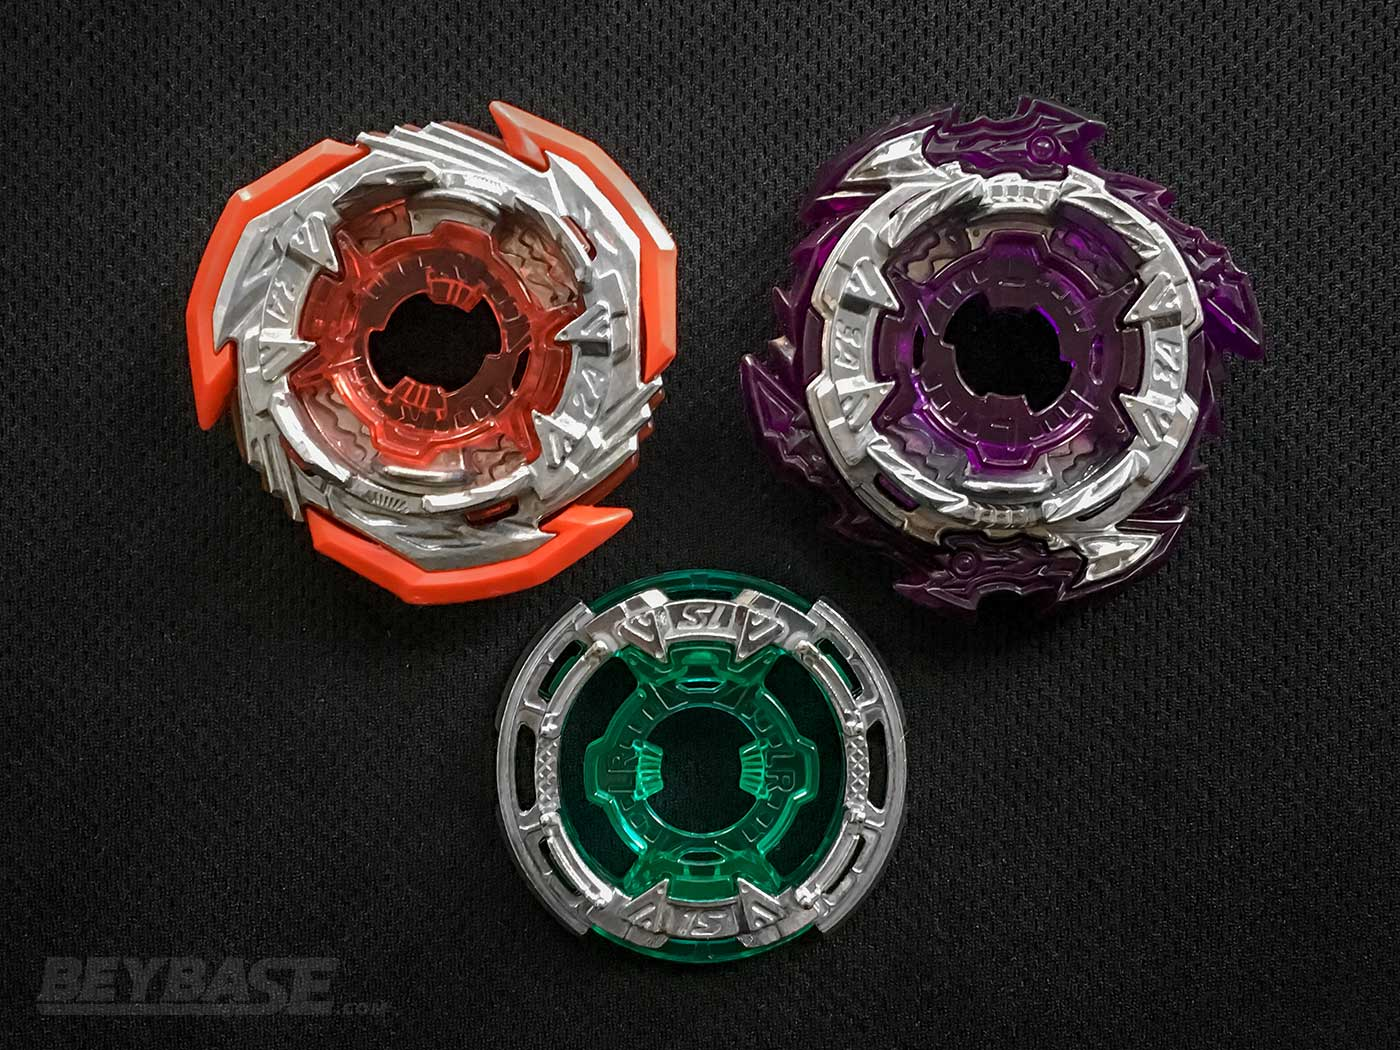 2a, 3a, 1s beyblade burst chassis